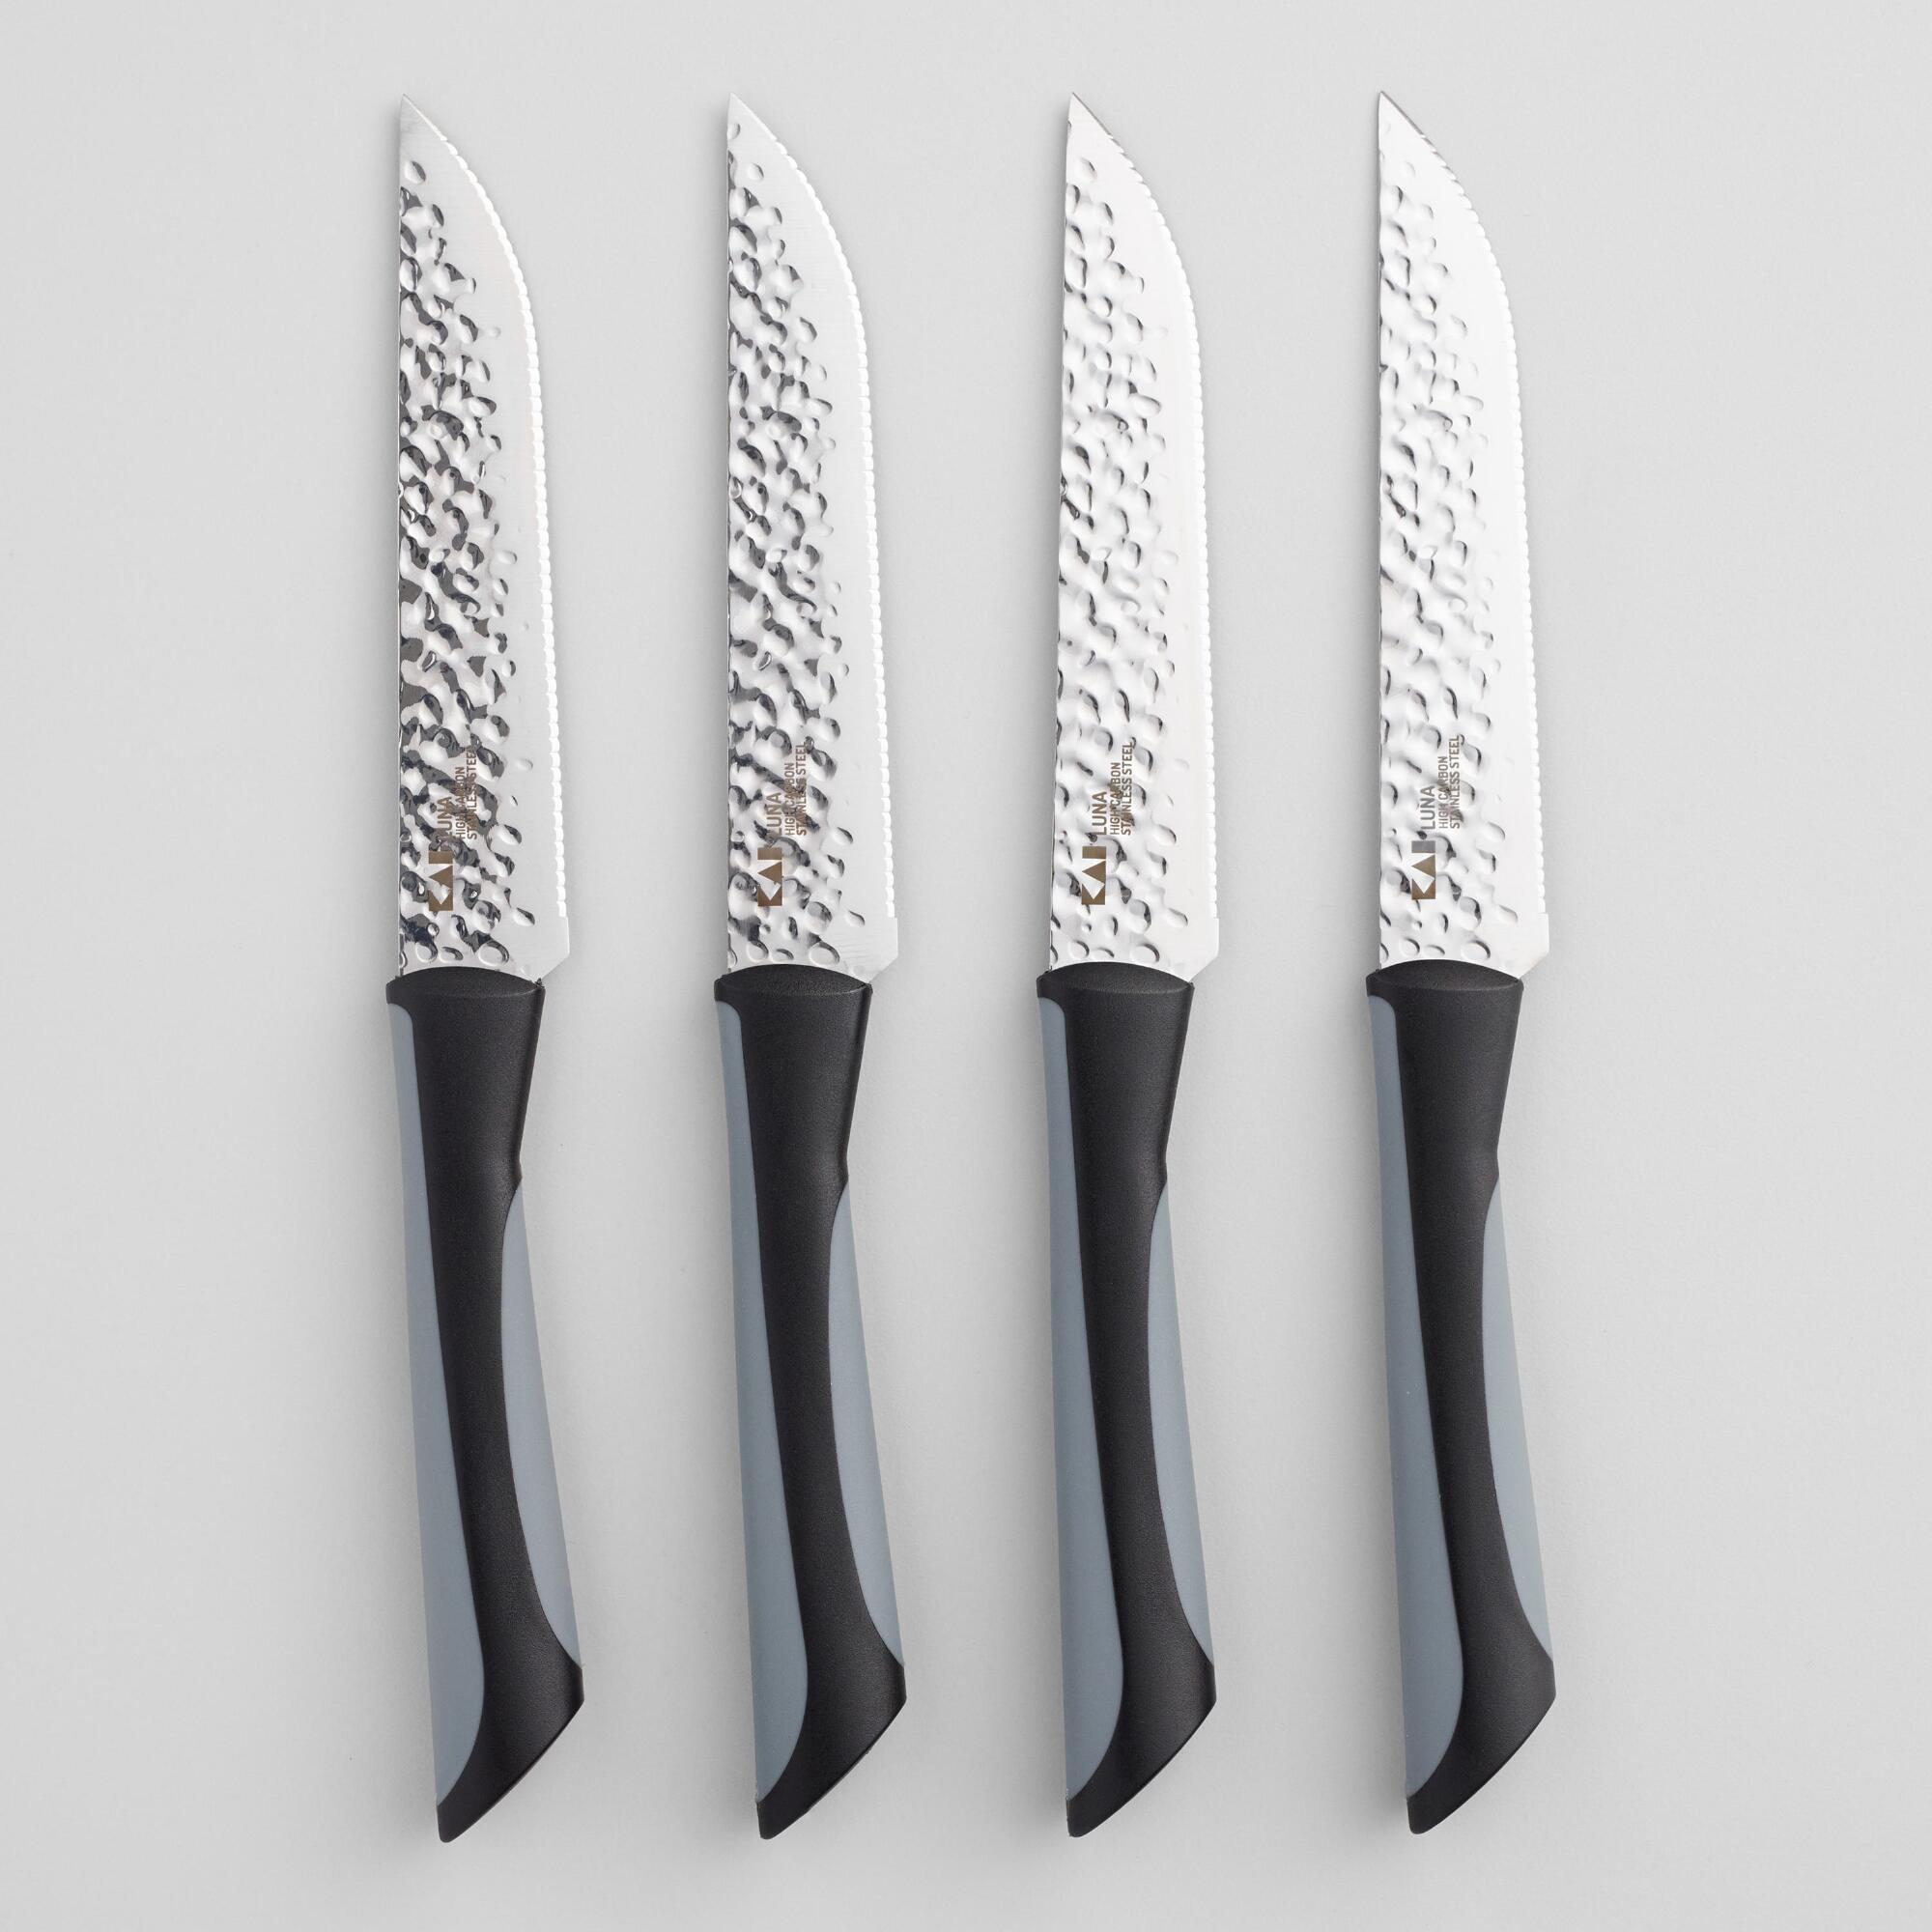 Kai Luna High Carbon Steel Steak Knives 4 Piece Set by World Market